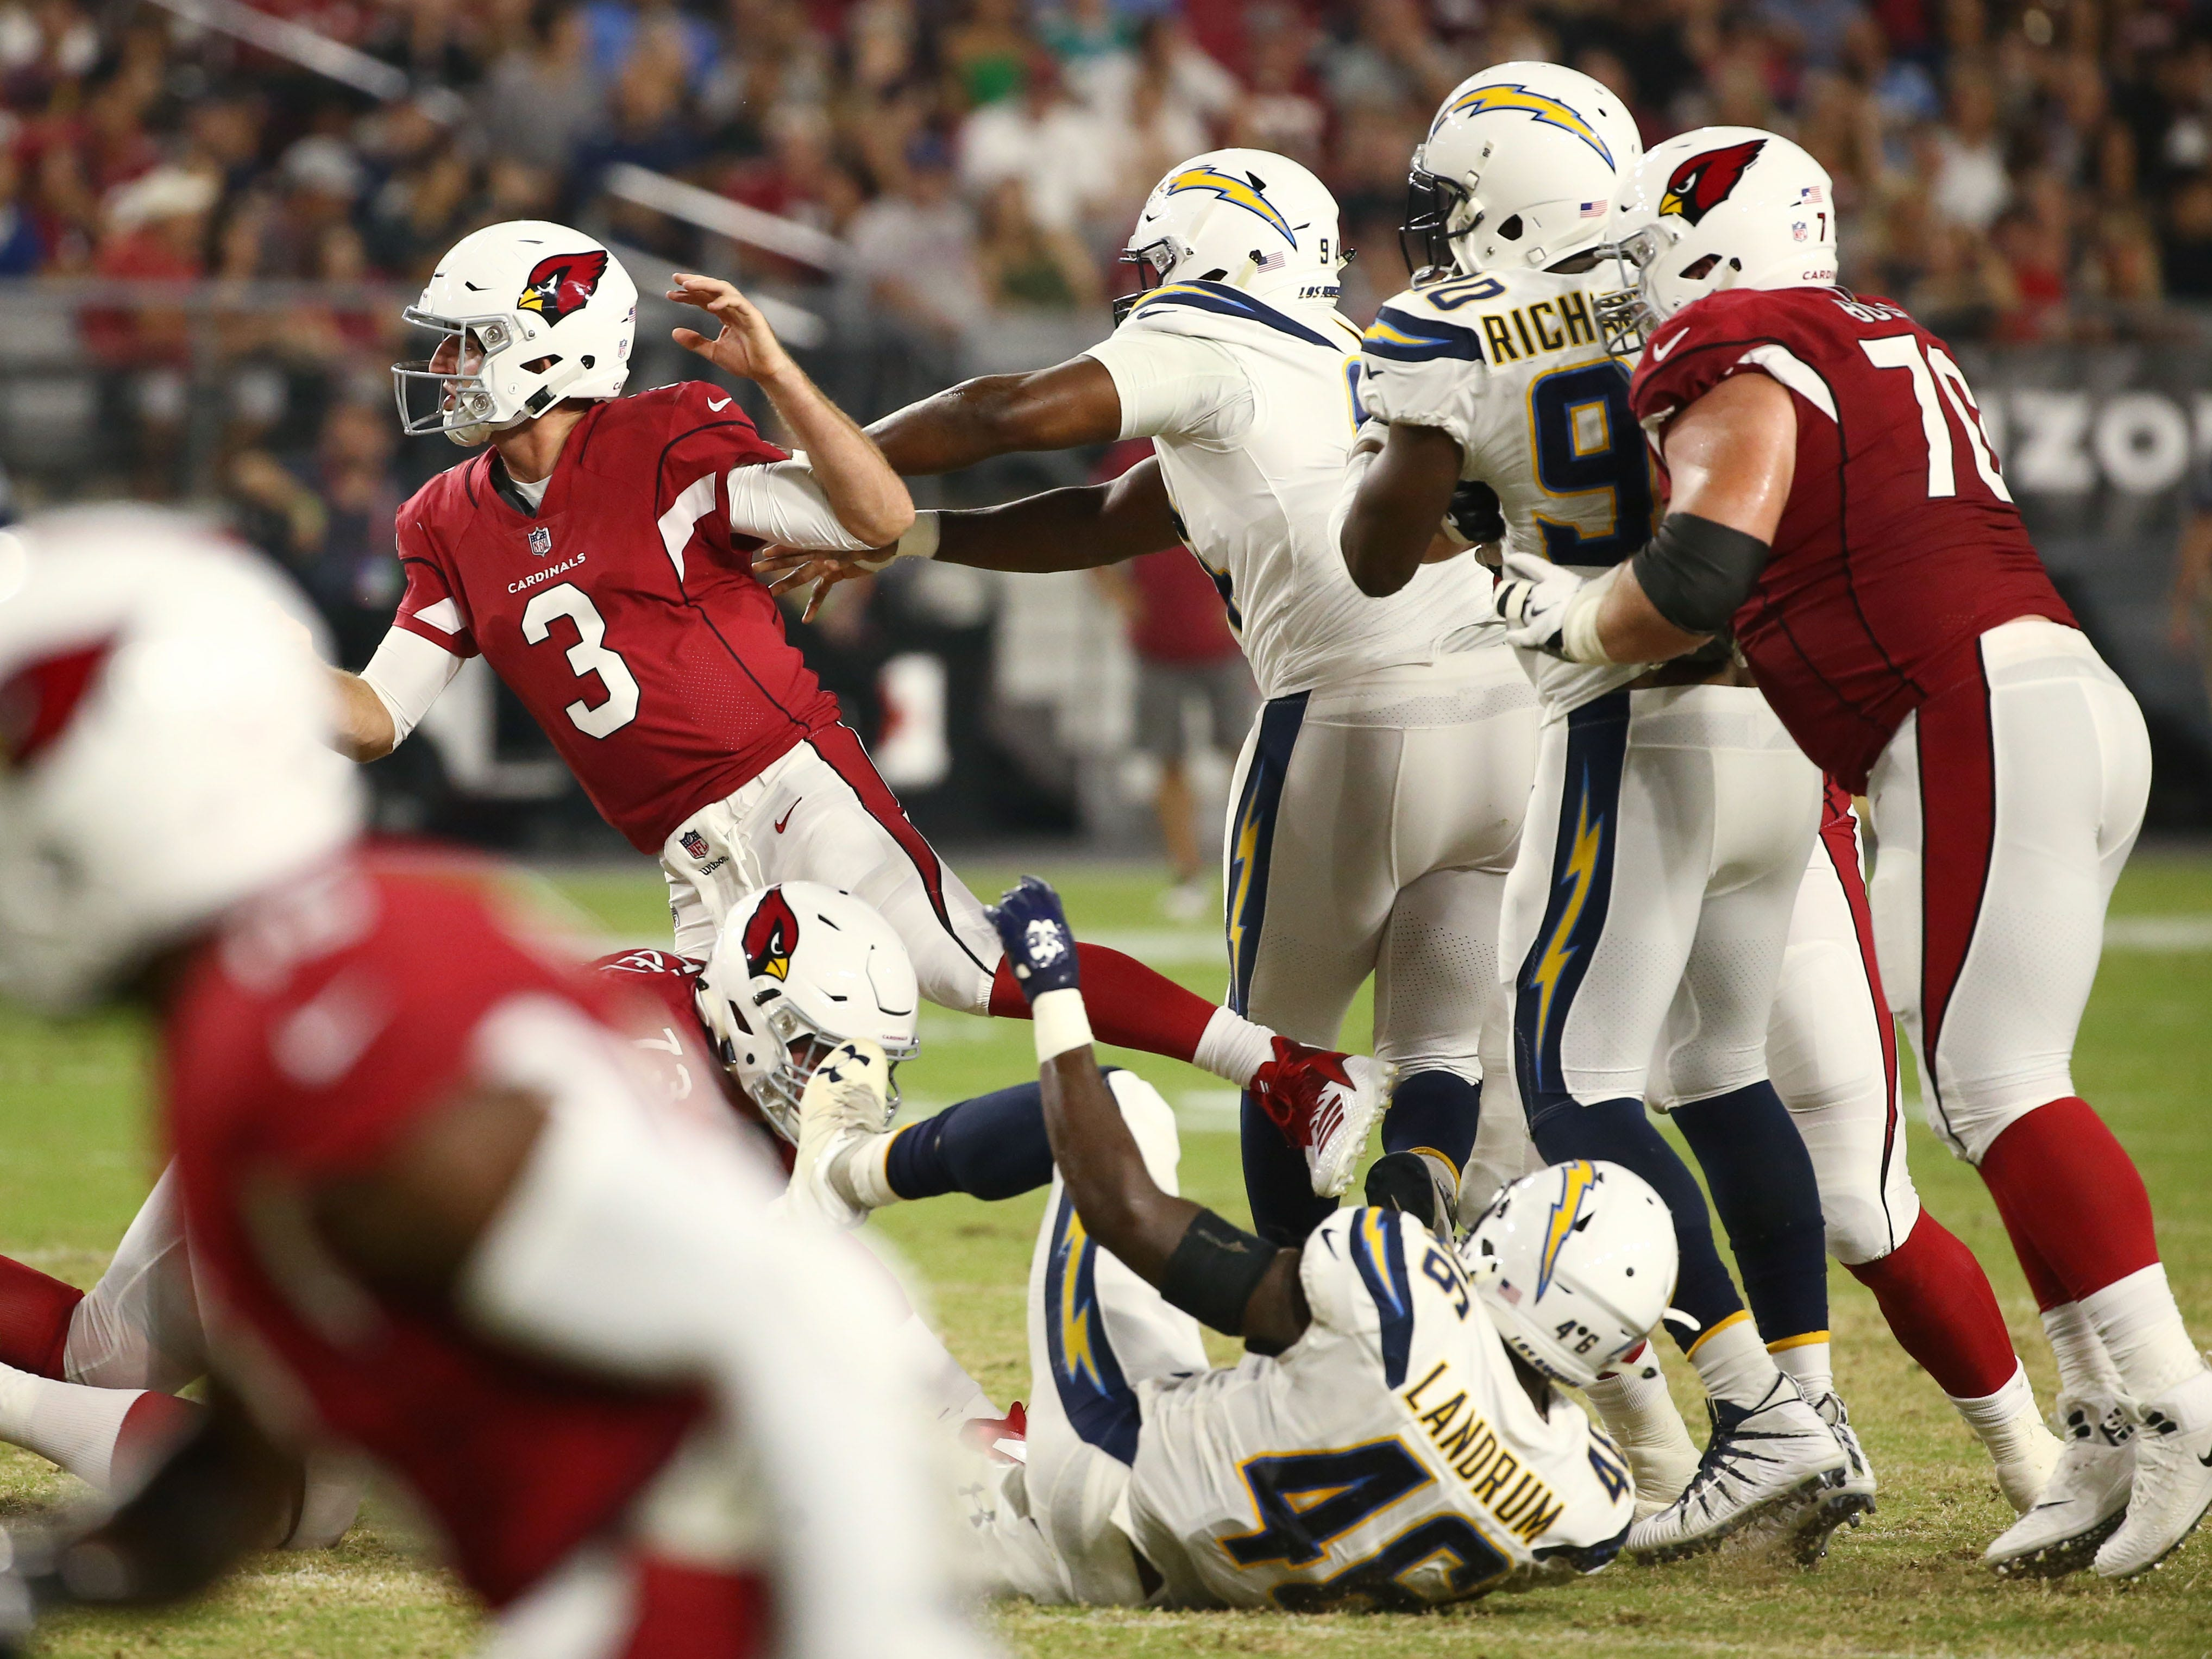 Arizona Cardinals Josh Rosen is pushed to the turf by L.A. Chargers Corey Liuget in the first half during a preseason NFL football game on Aug. 11, 2018 at University of Phoenix Stadium in Glendale, Ariz.